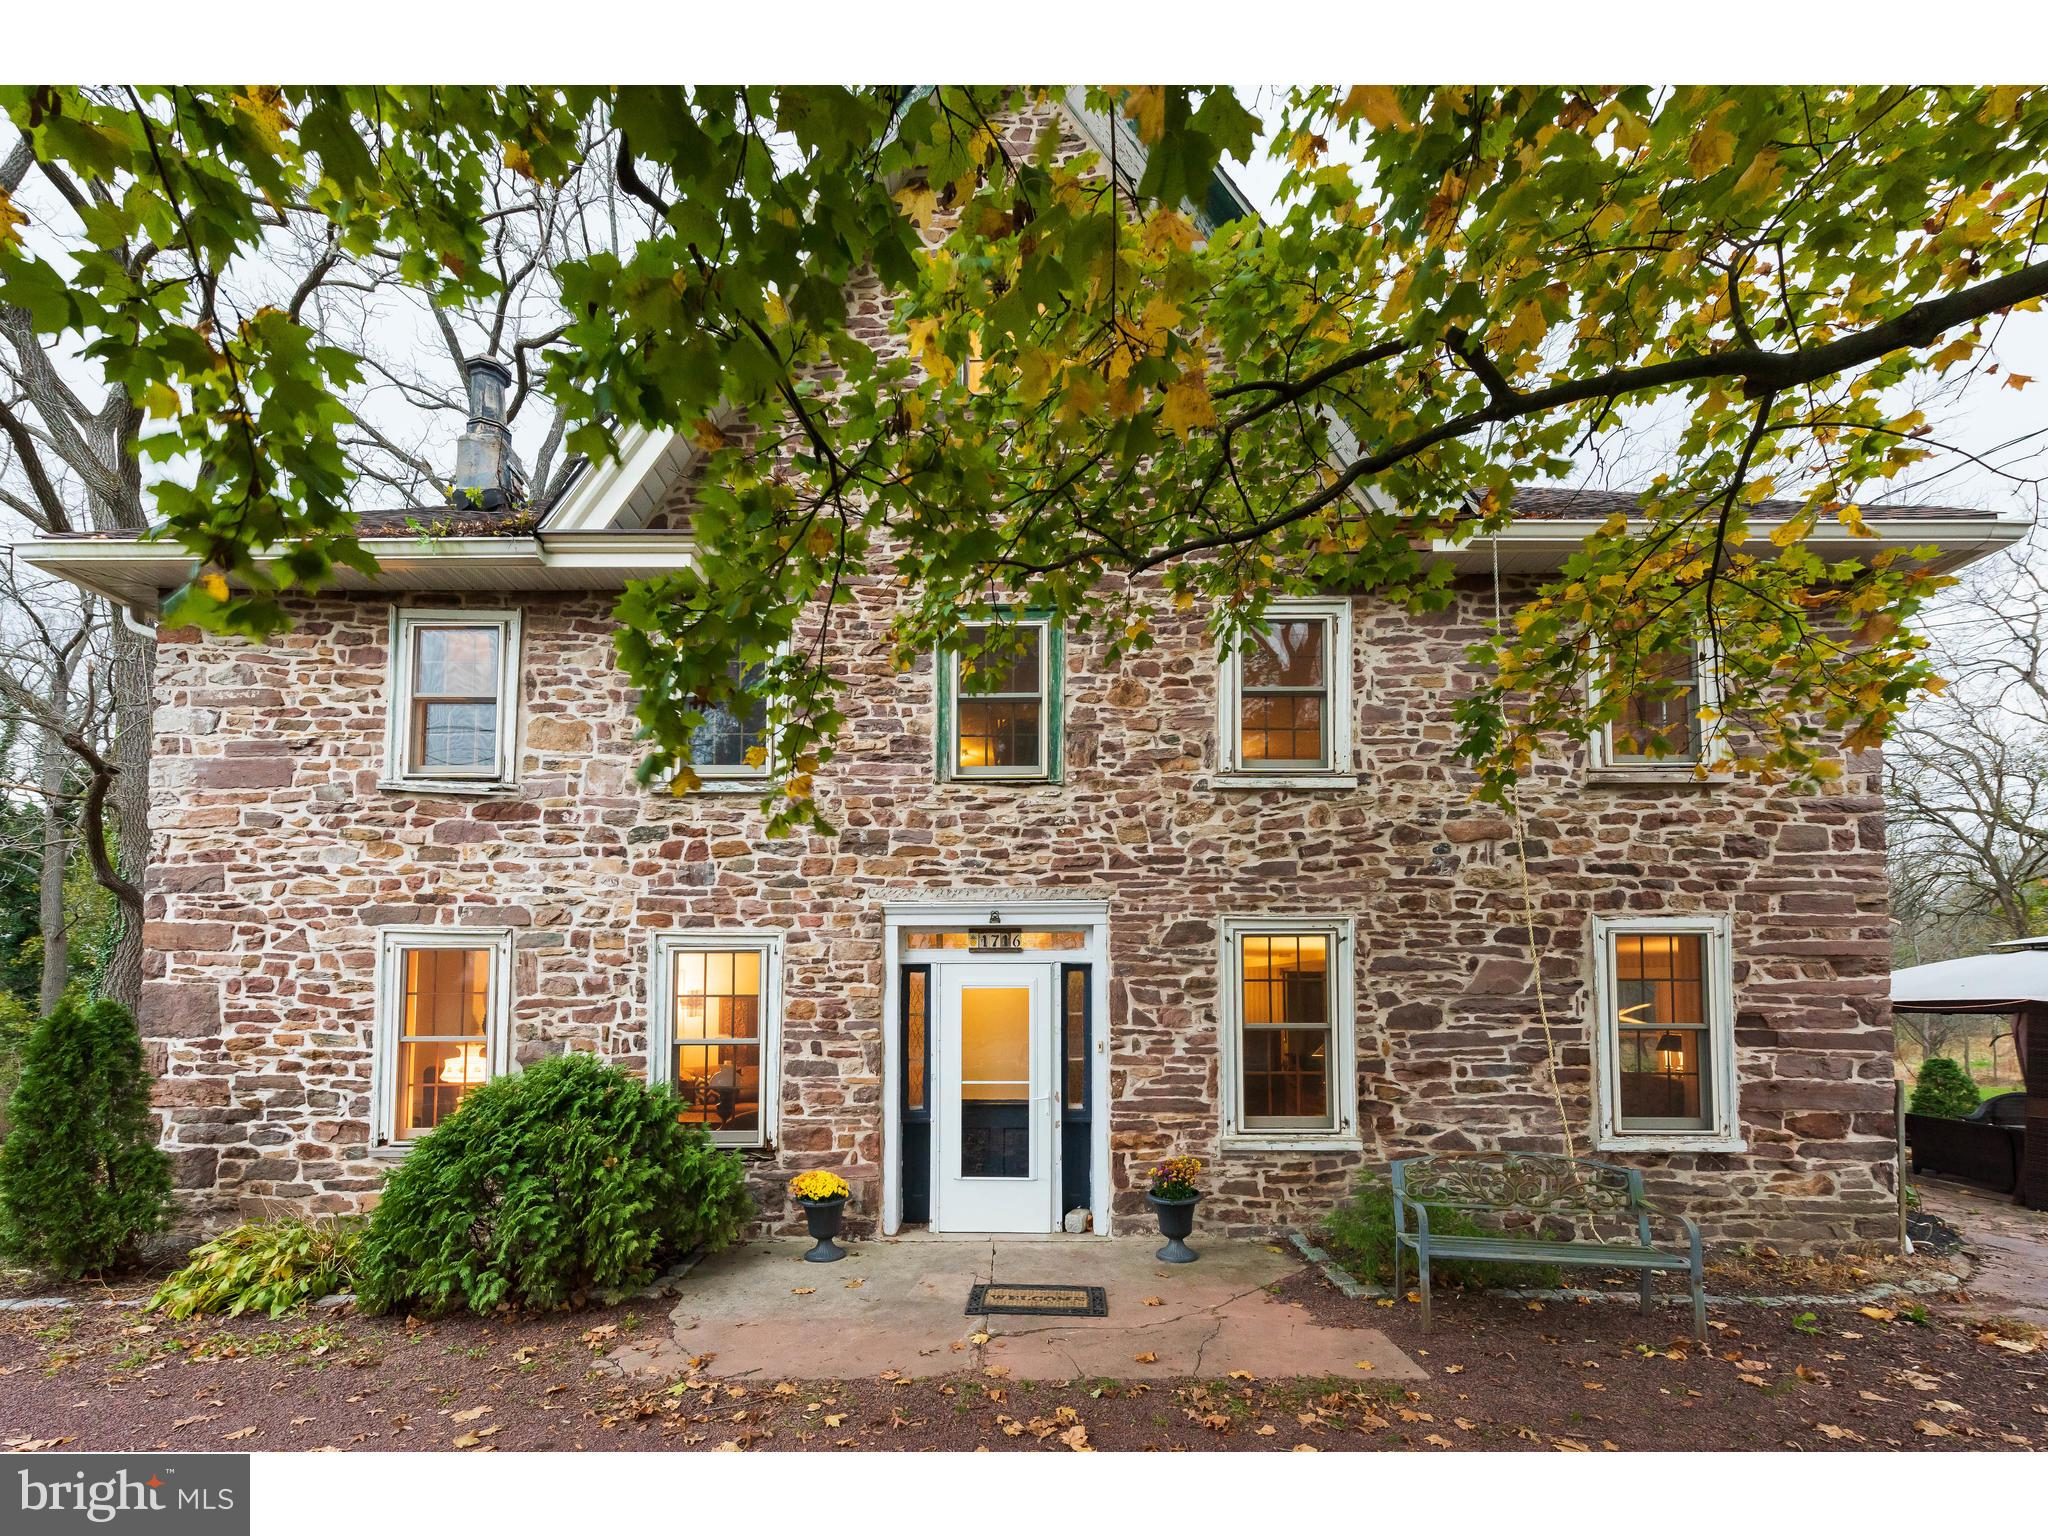 1716 S Valley Forge, Worcester, PA 19490